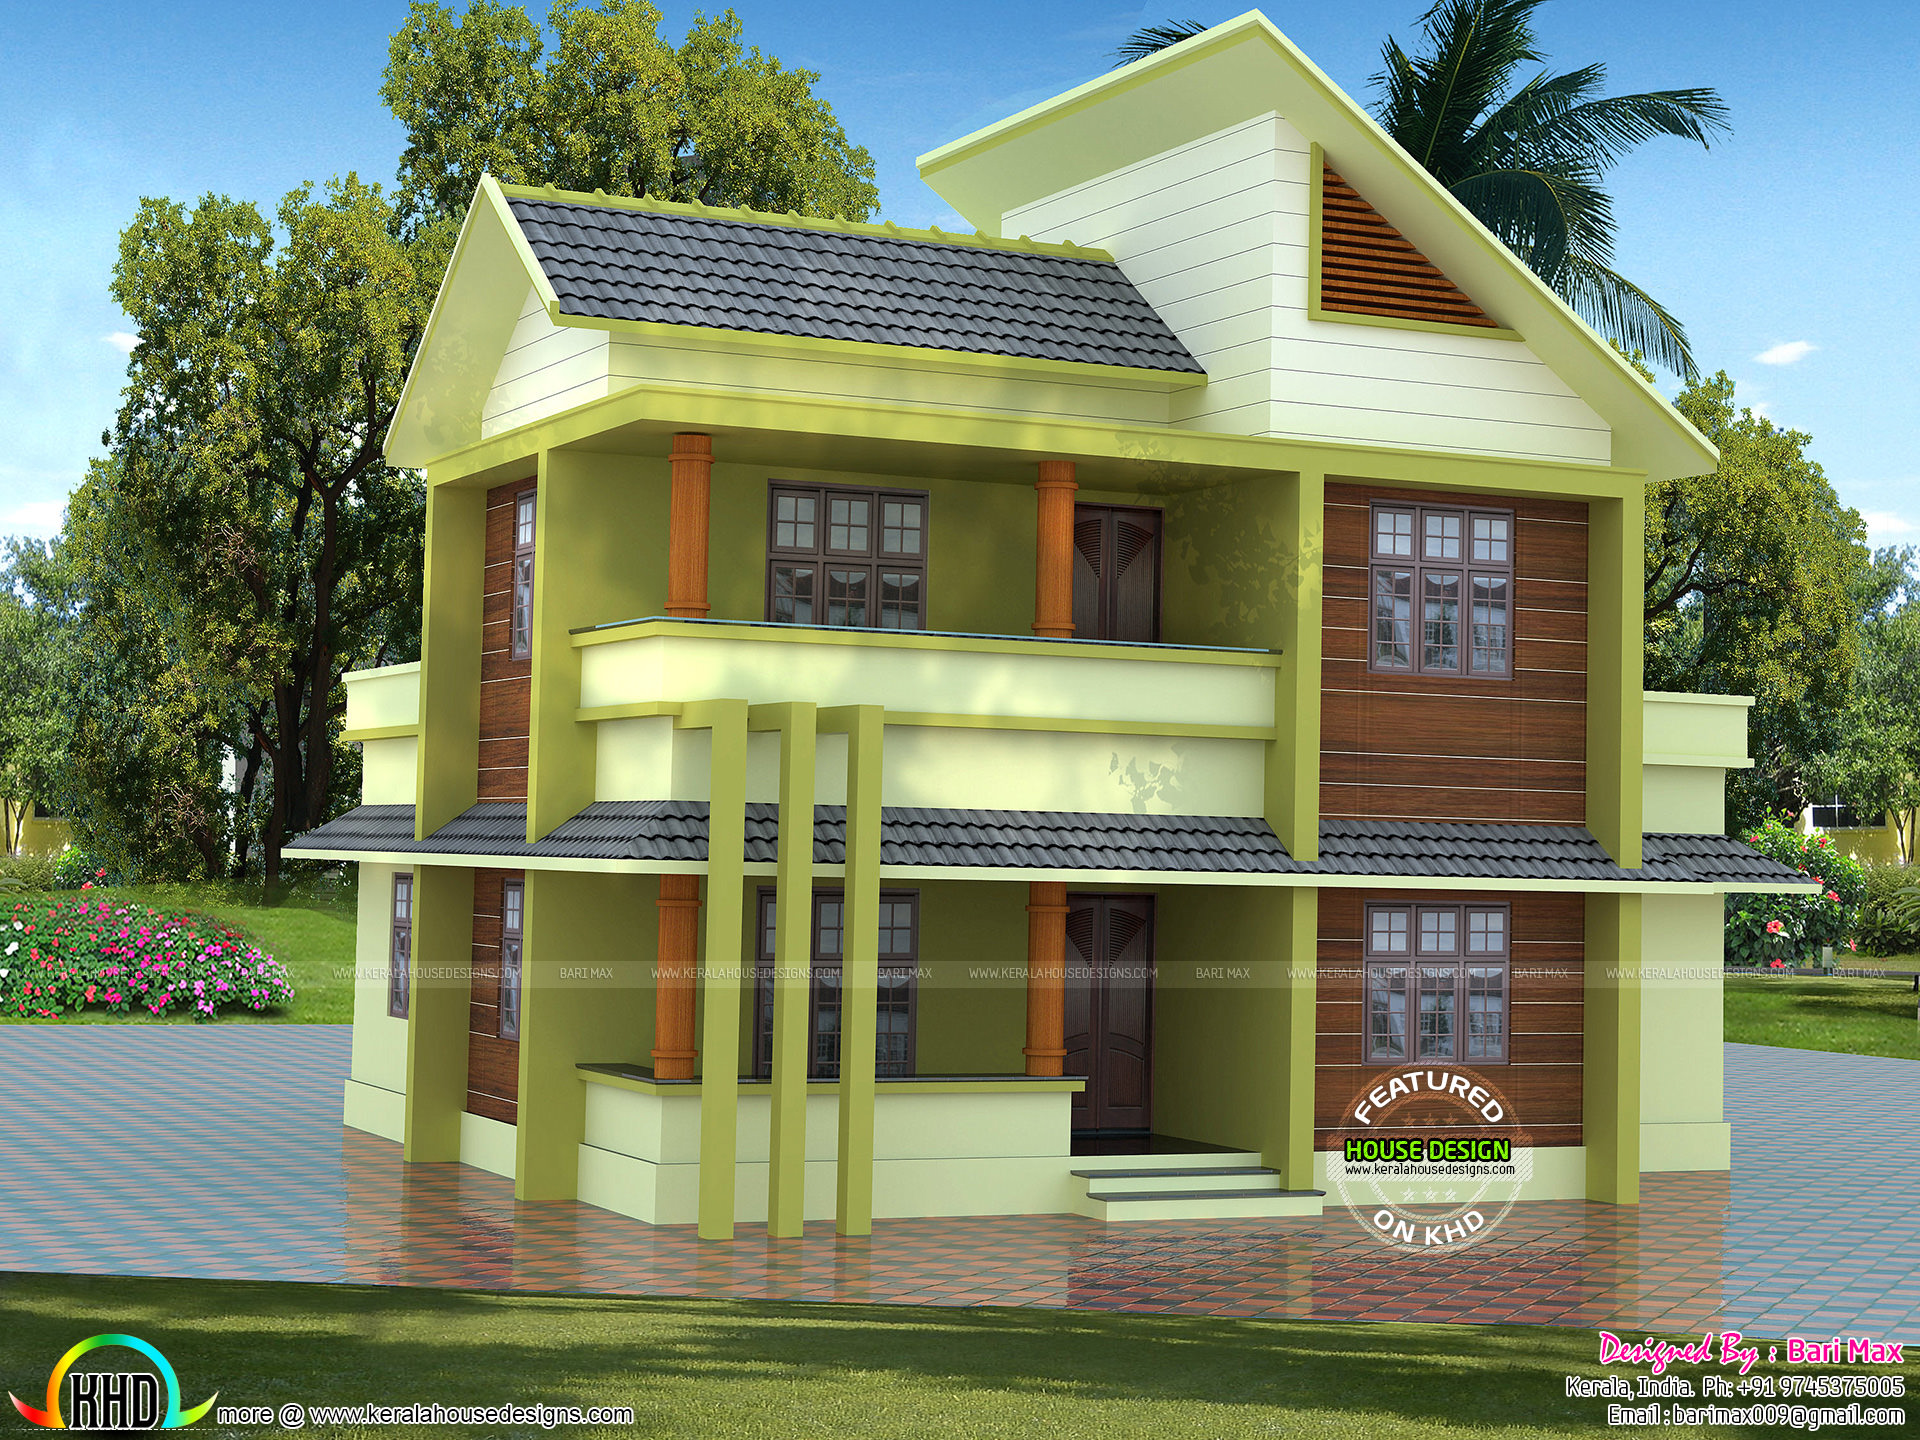 1700 sq ft 30 lakhs cost estimated modern home kerala for Modern house cost